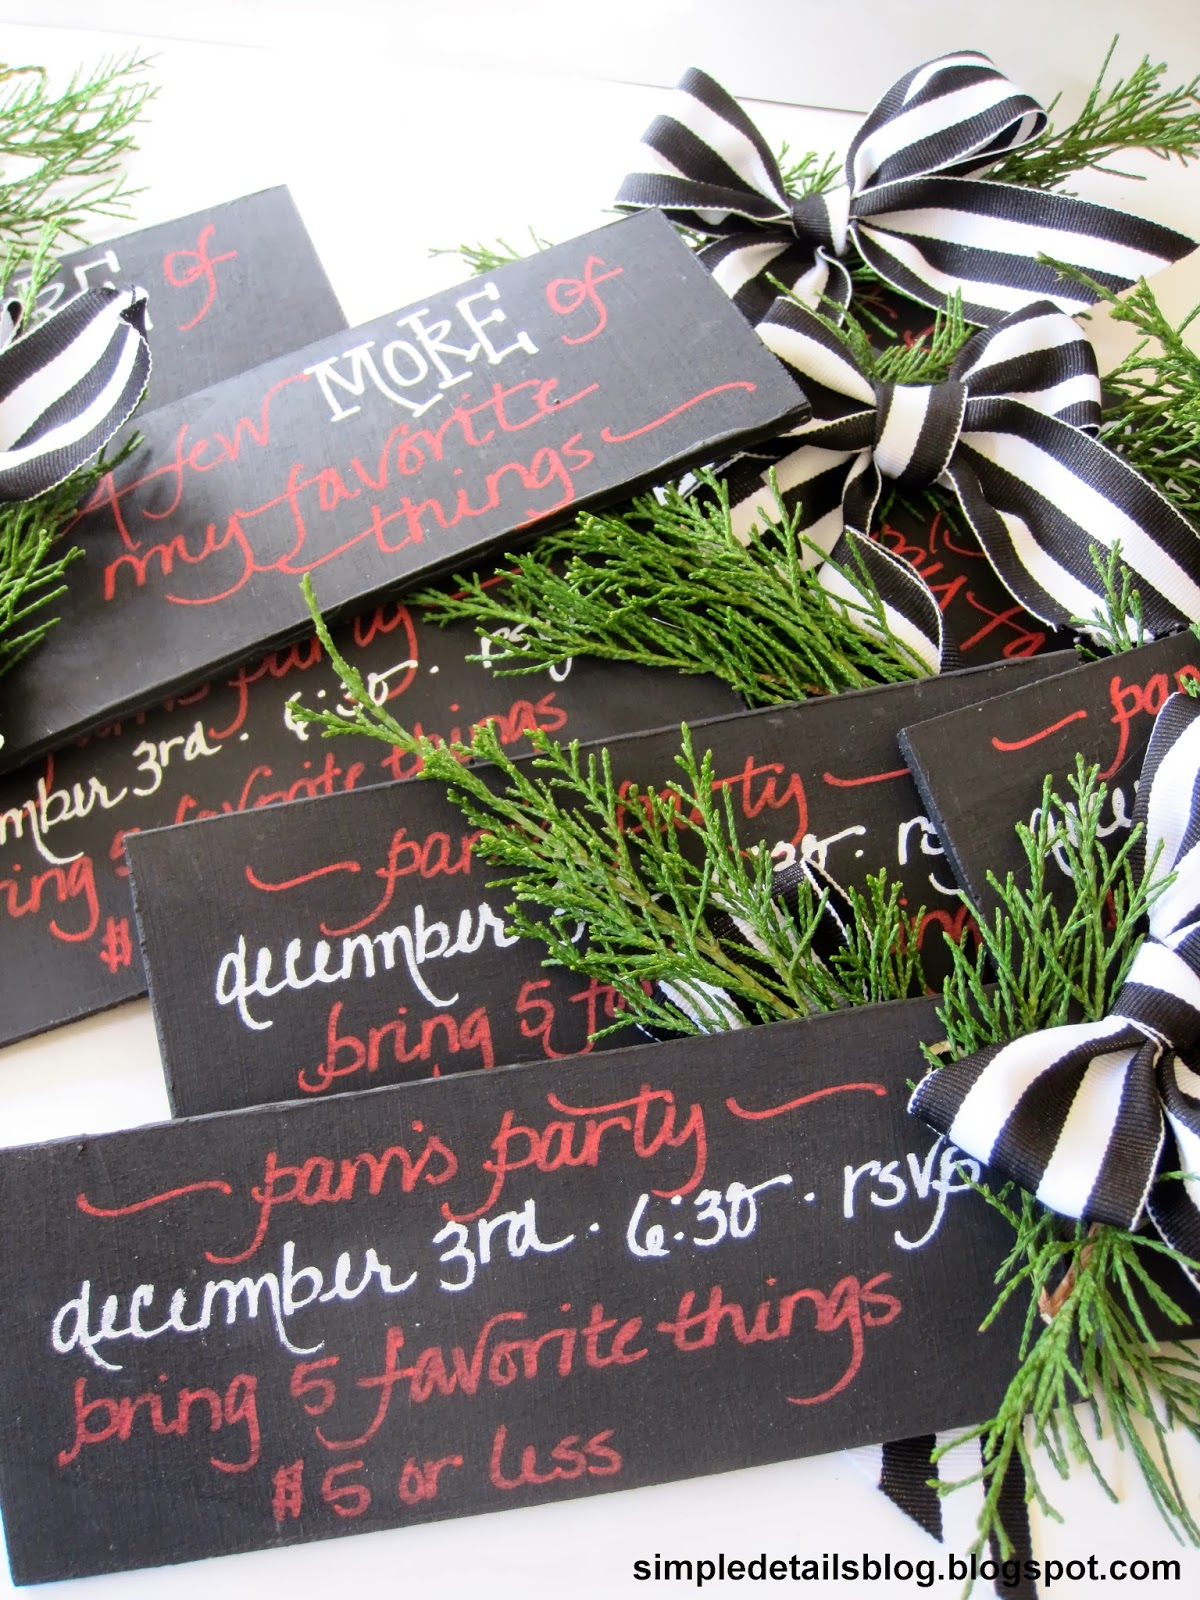 Simple Details: 13th annual christmas party invites...